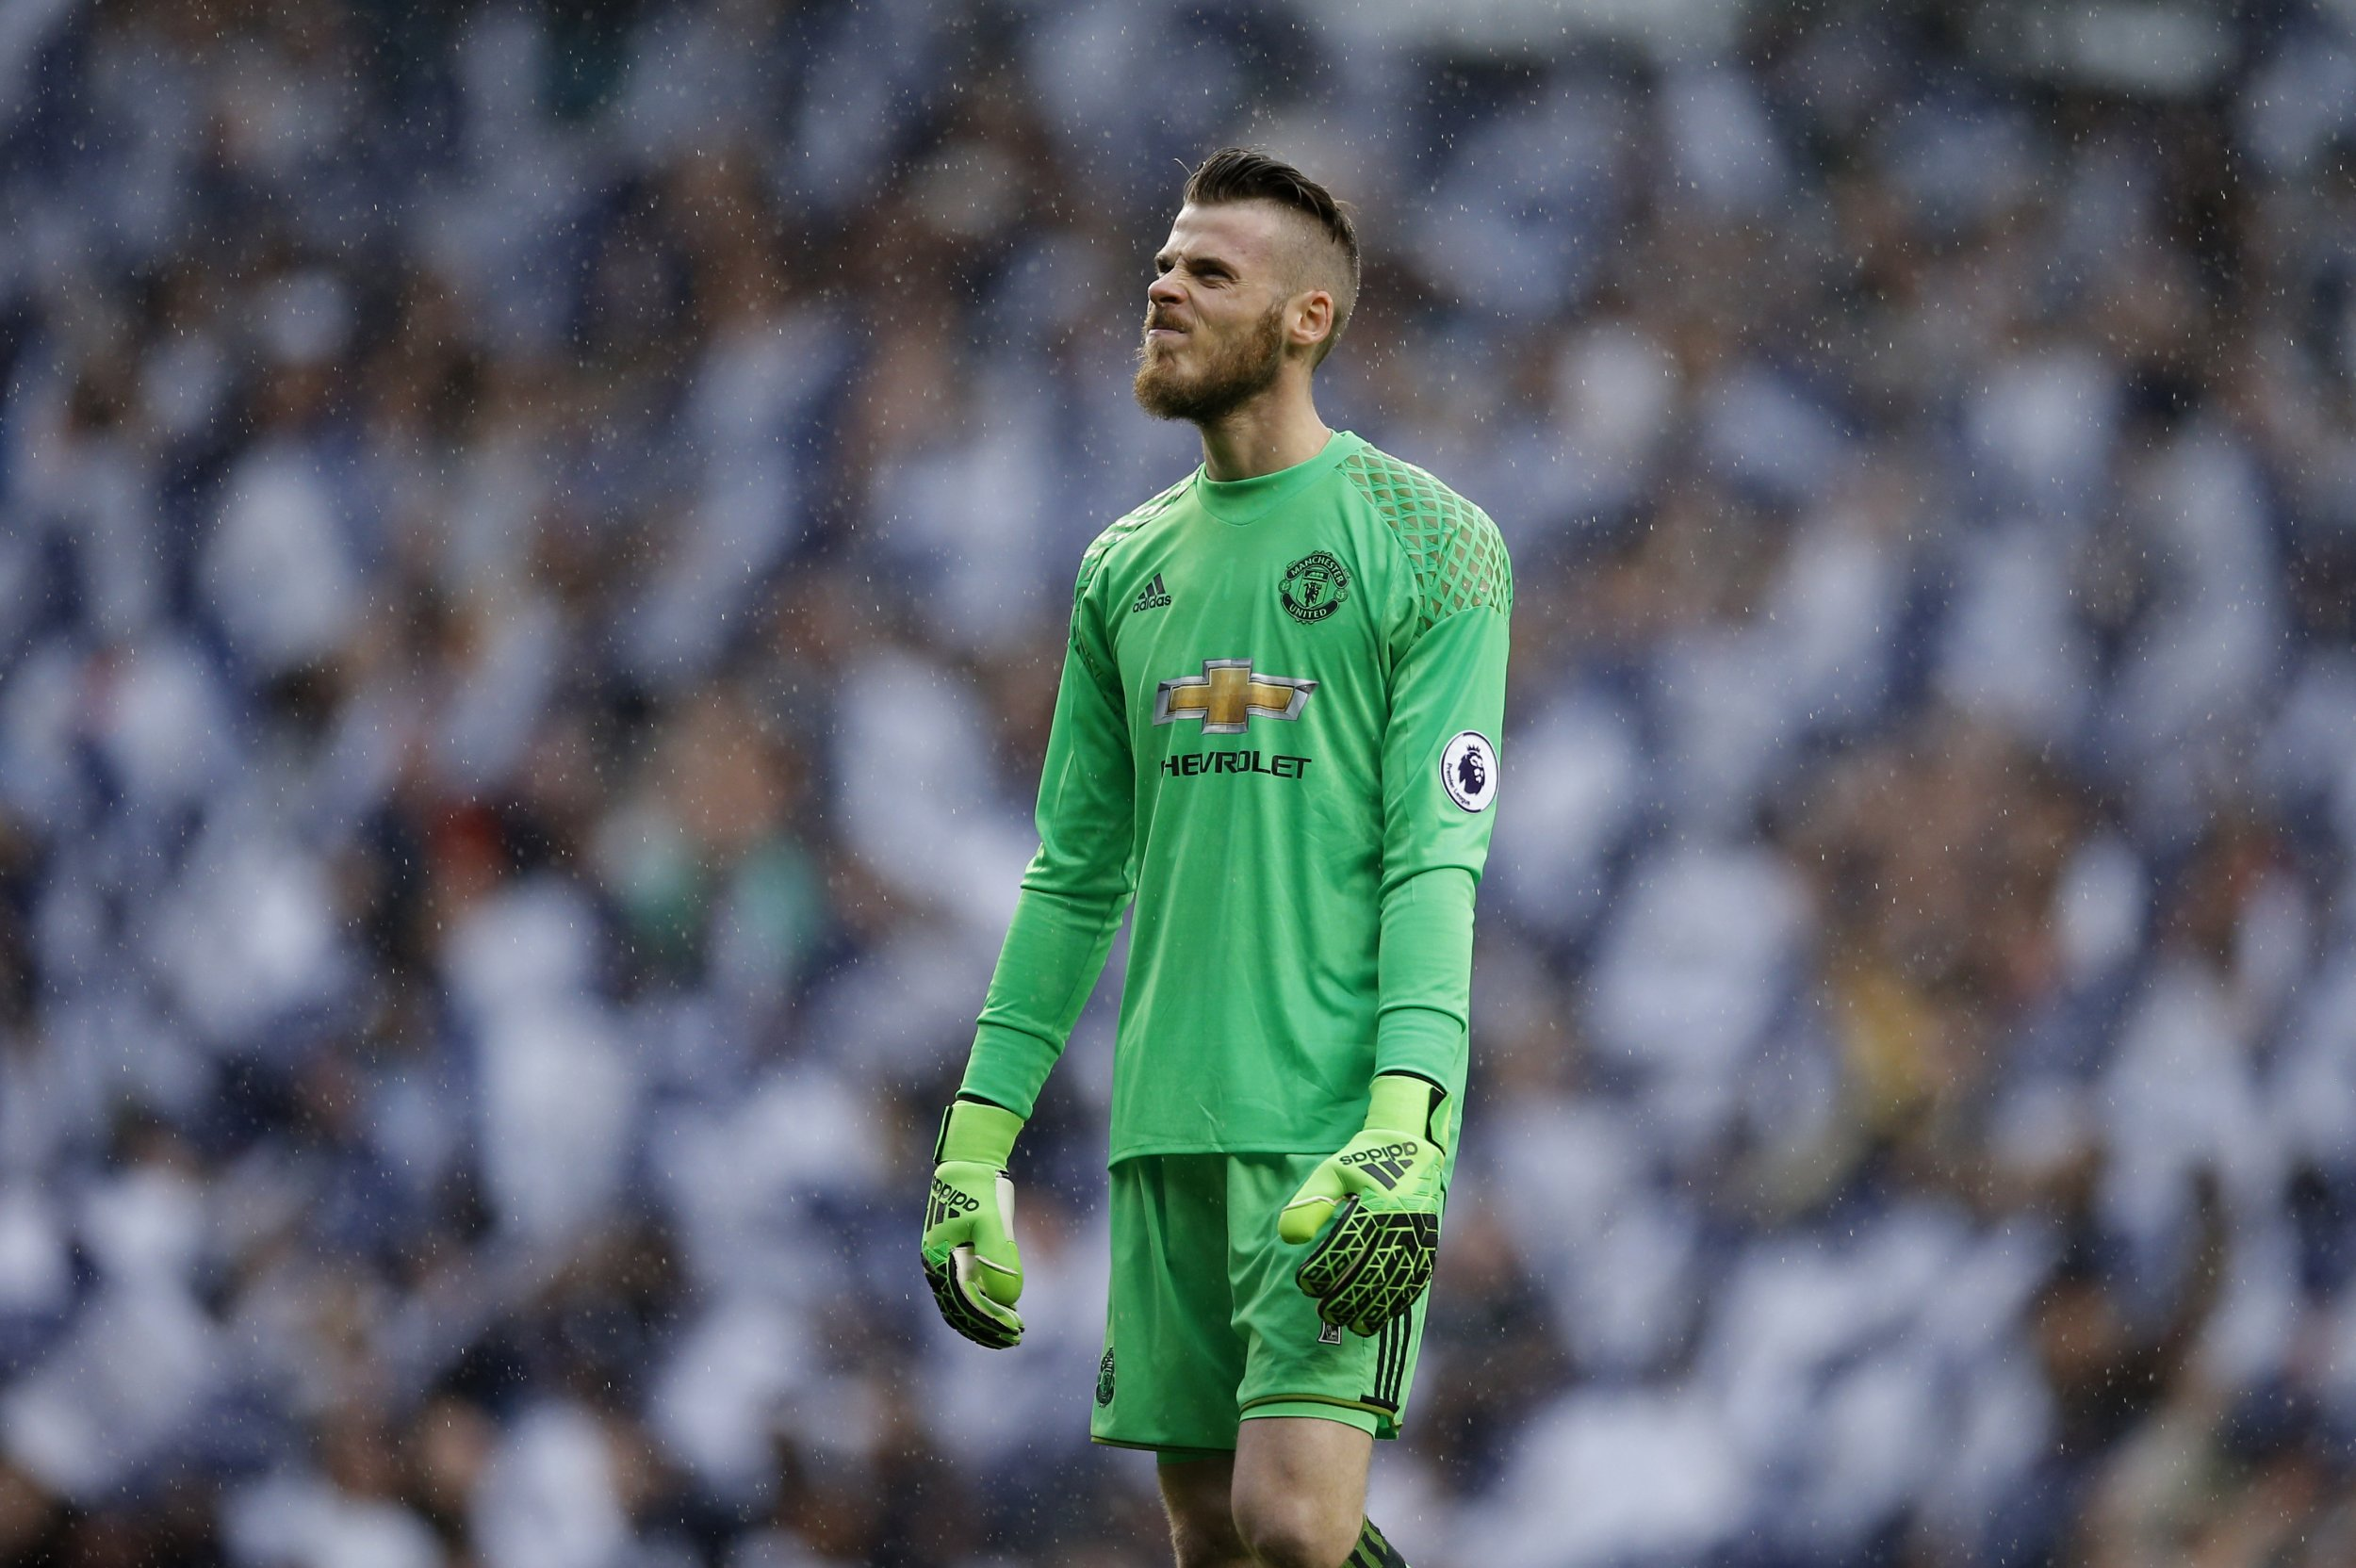 Manchester United goalkeeper David De Gea at White Hart Lane, north London, May 14.